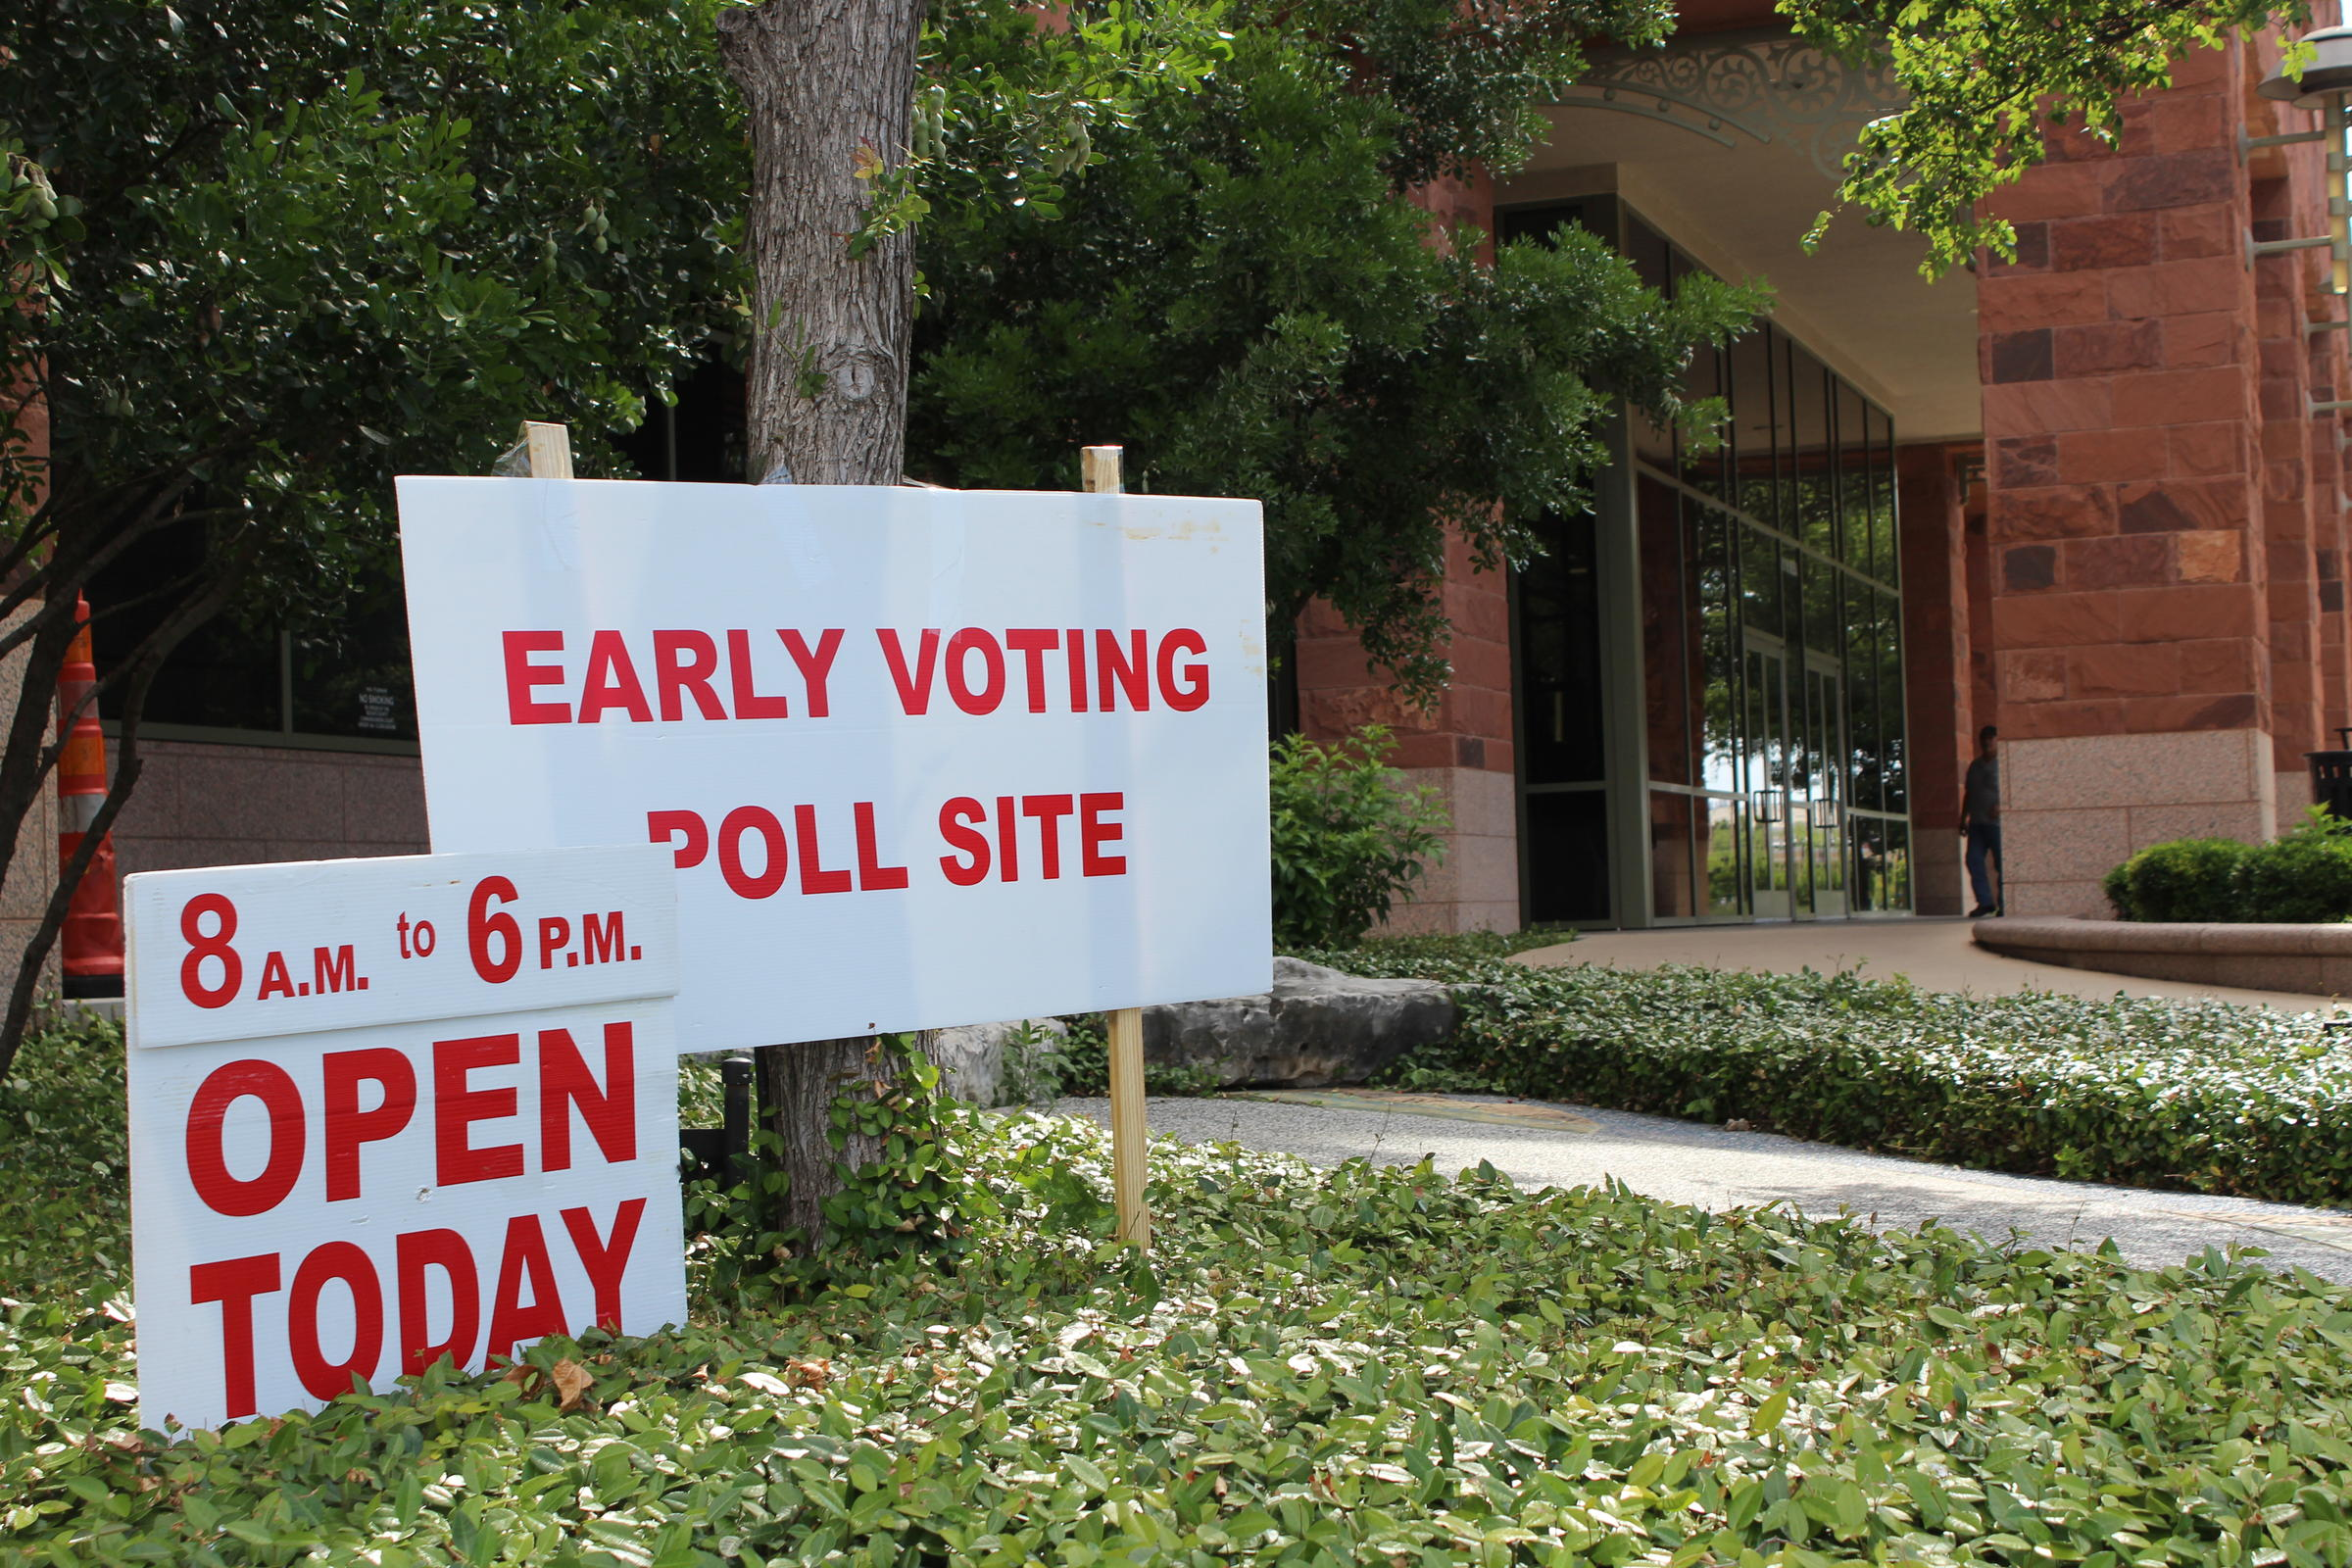 Early and Grace Period Voting Begins Wednesday for March 20th Primary